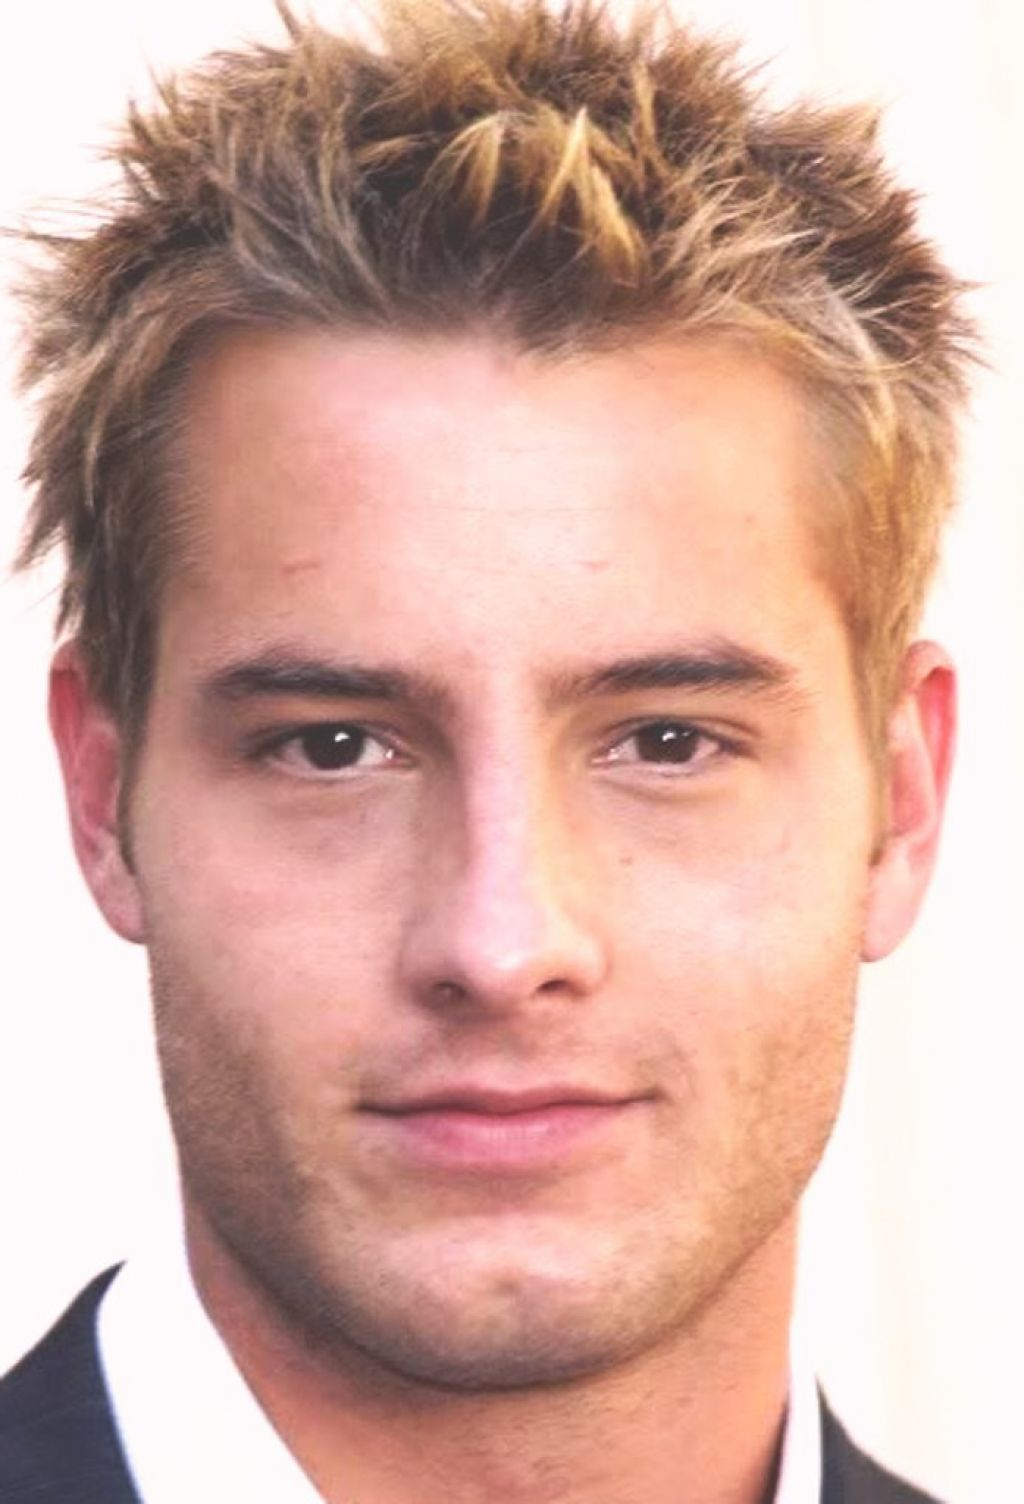 Best haircut for men thin hair mastering your hair top  advices for a modern man  new project